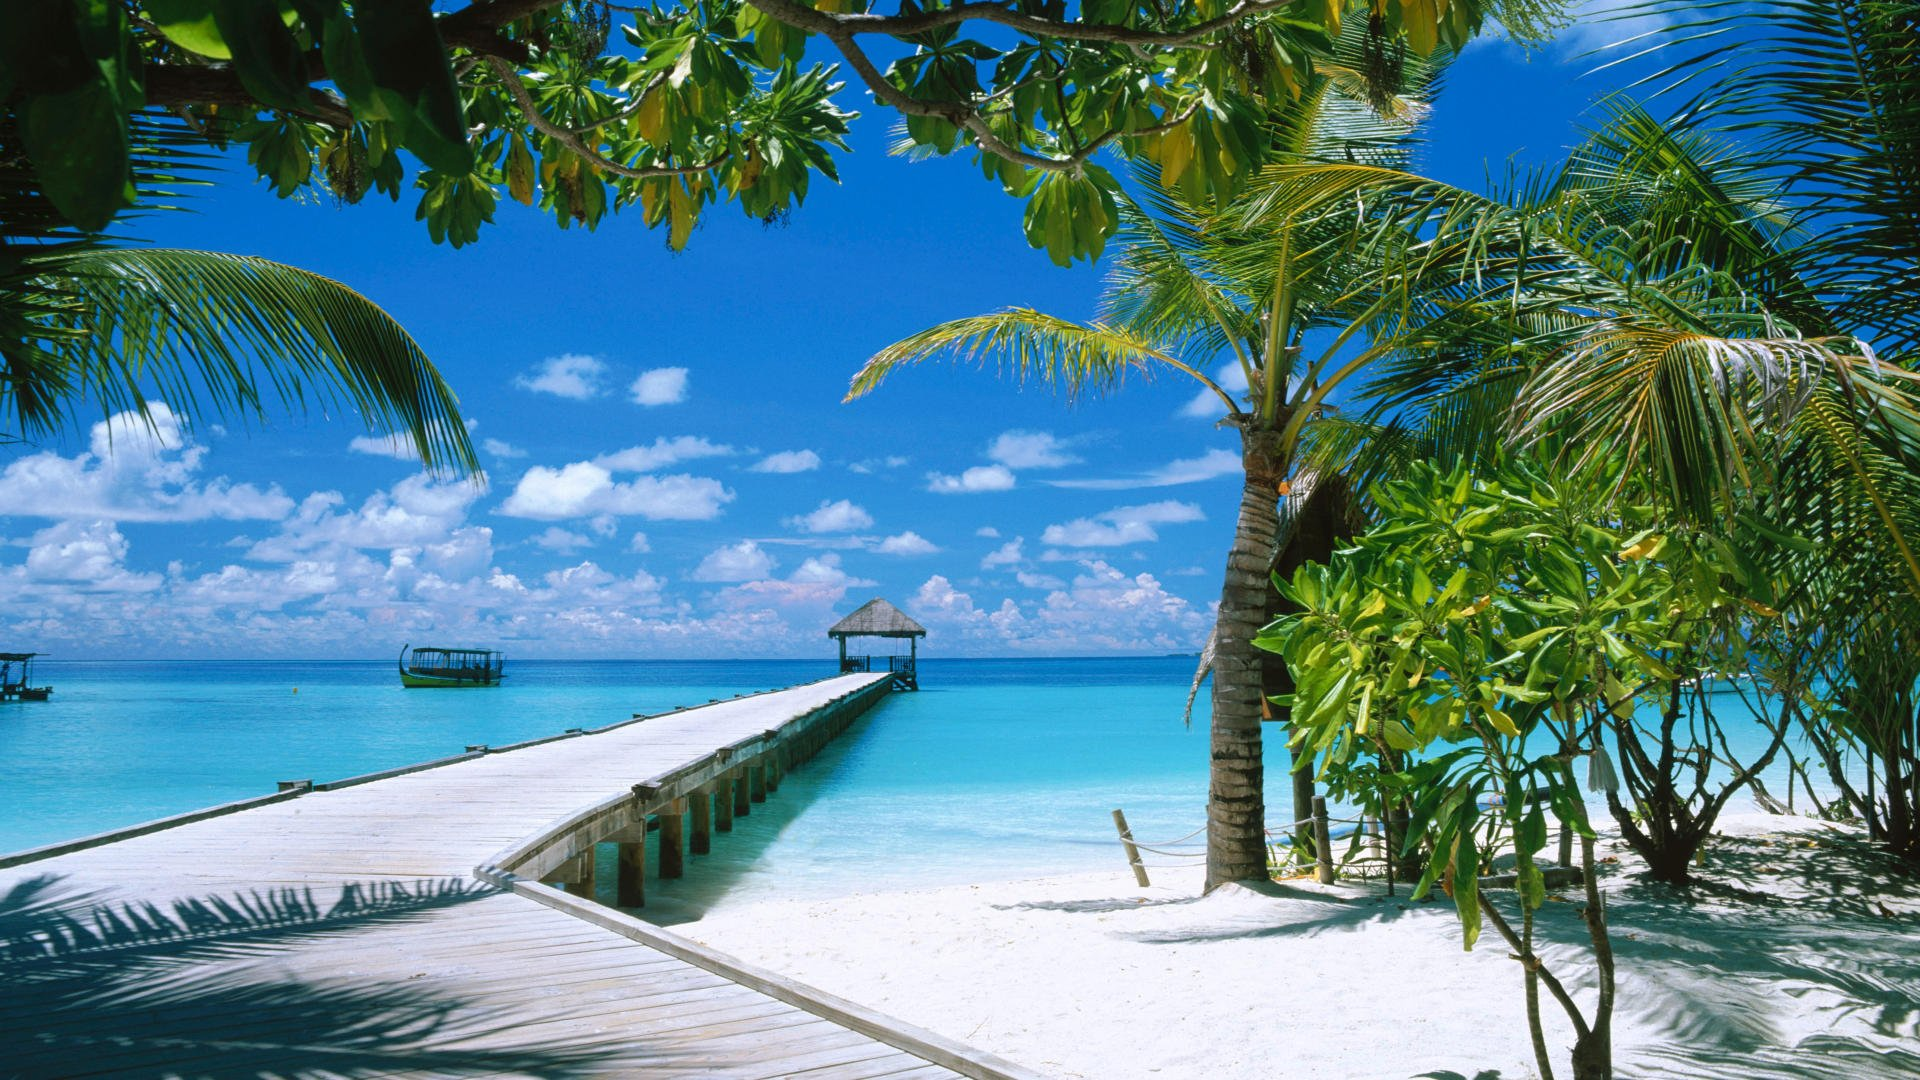 fond ecran plage beach wallpaper maldives HD gratuit   1920x1080 1920x1080